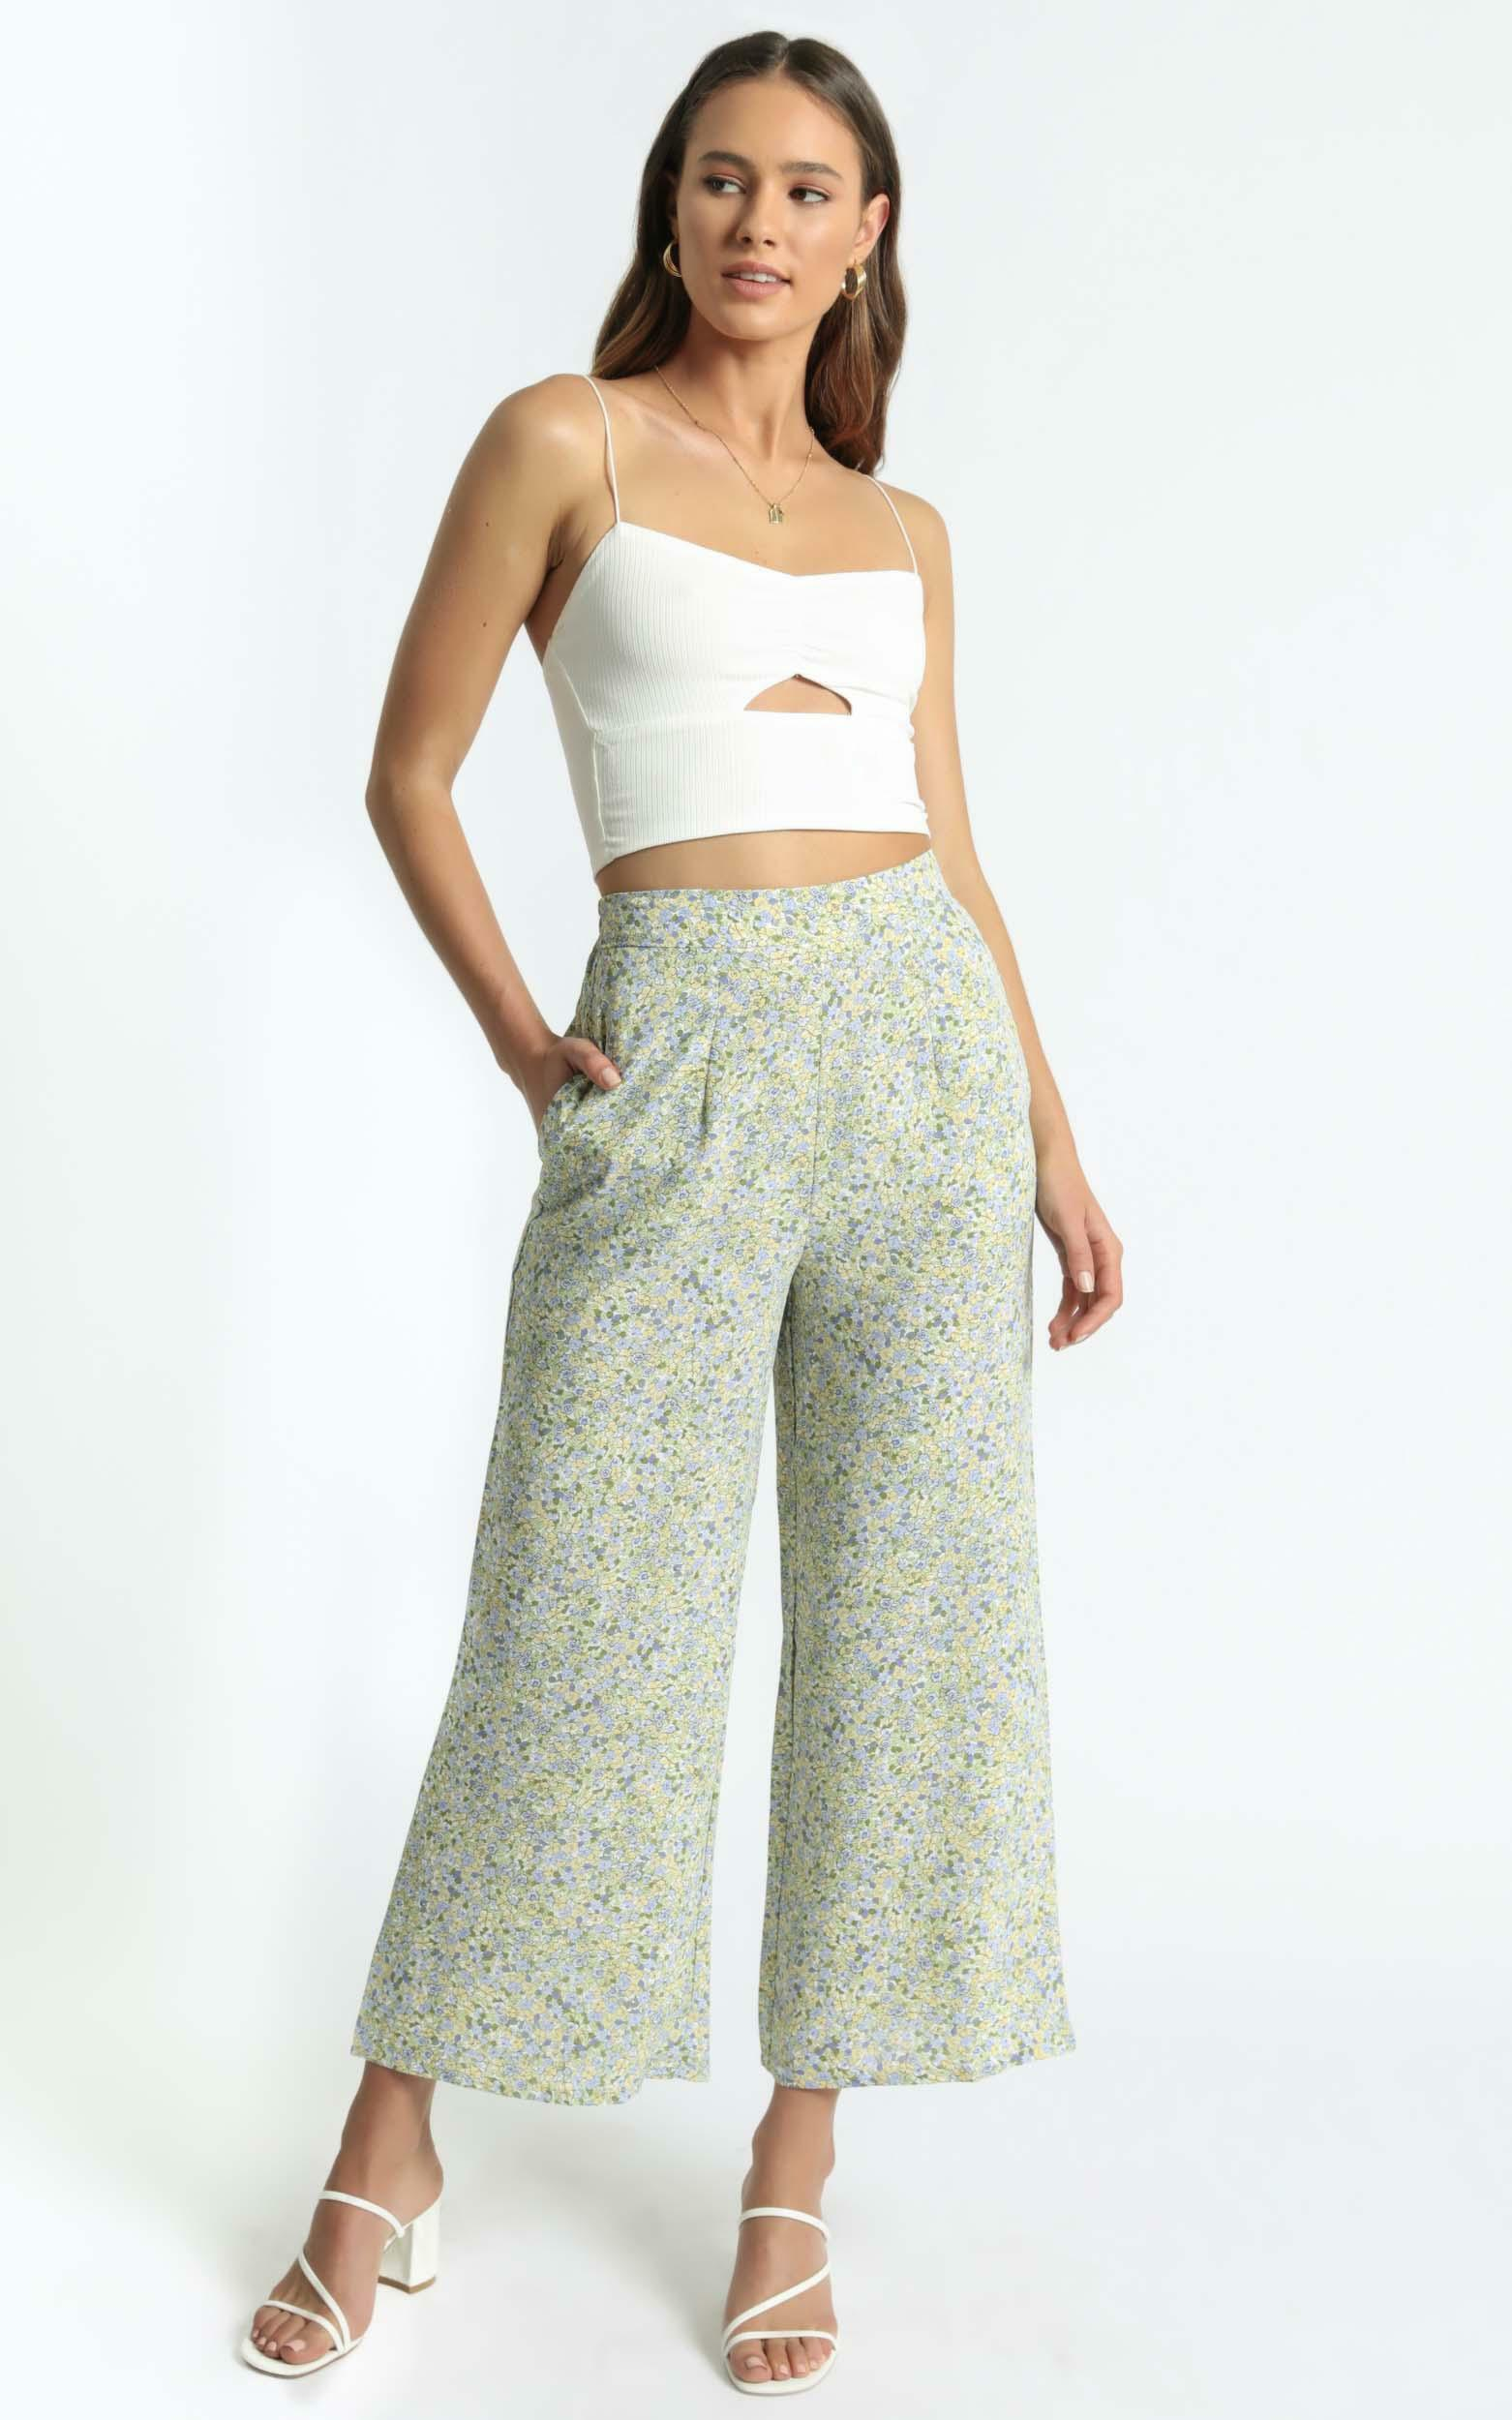 Zoi Pants in Blue Floral - 6 (XS), Multi, hi-res image number null